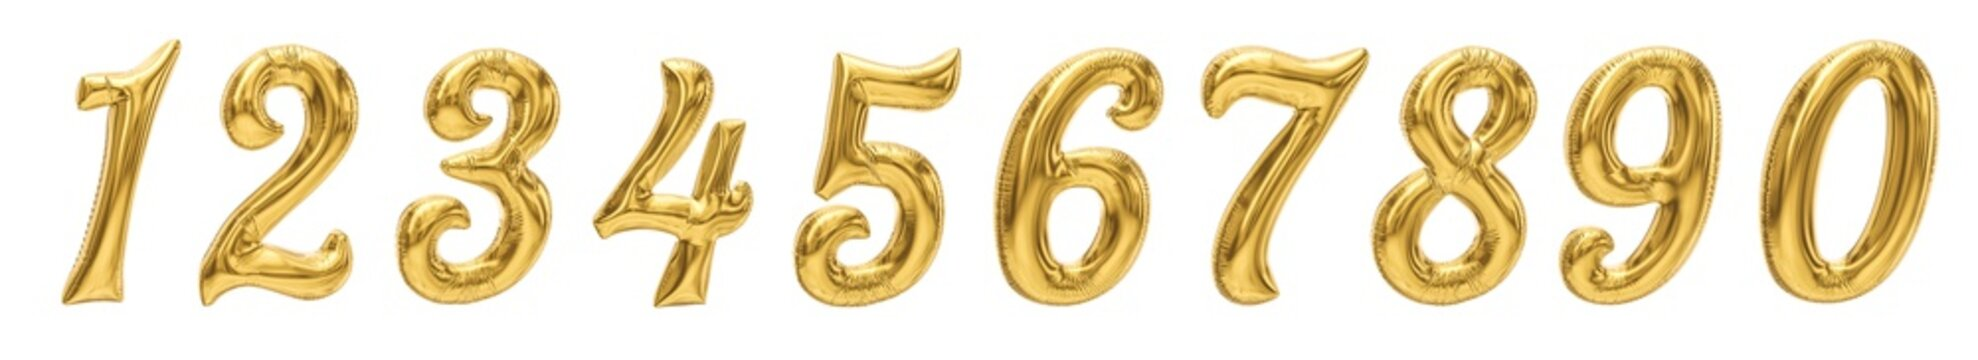 Golden Number Balloons from 0 to 9. Helium ballons made of foil or latex. Realistic birthday party baloons. Isolated on white